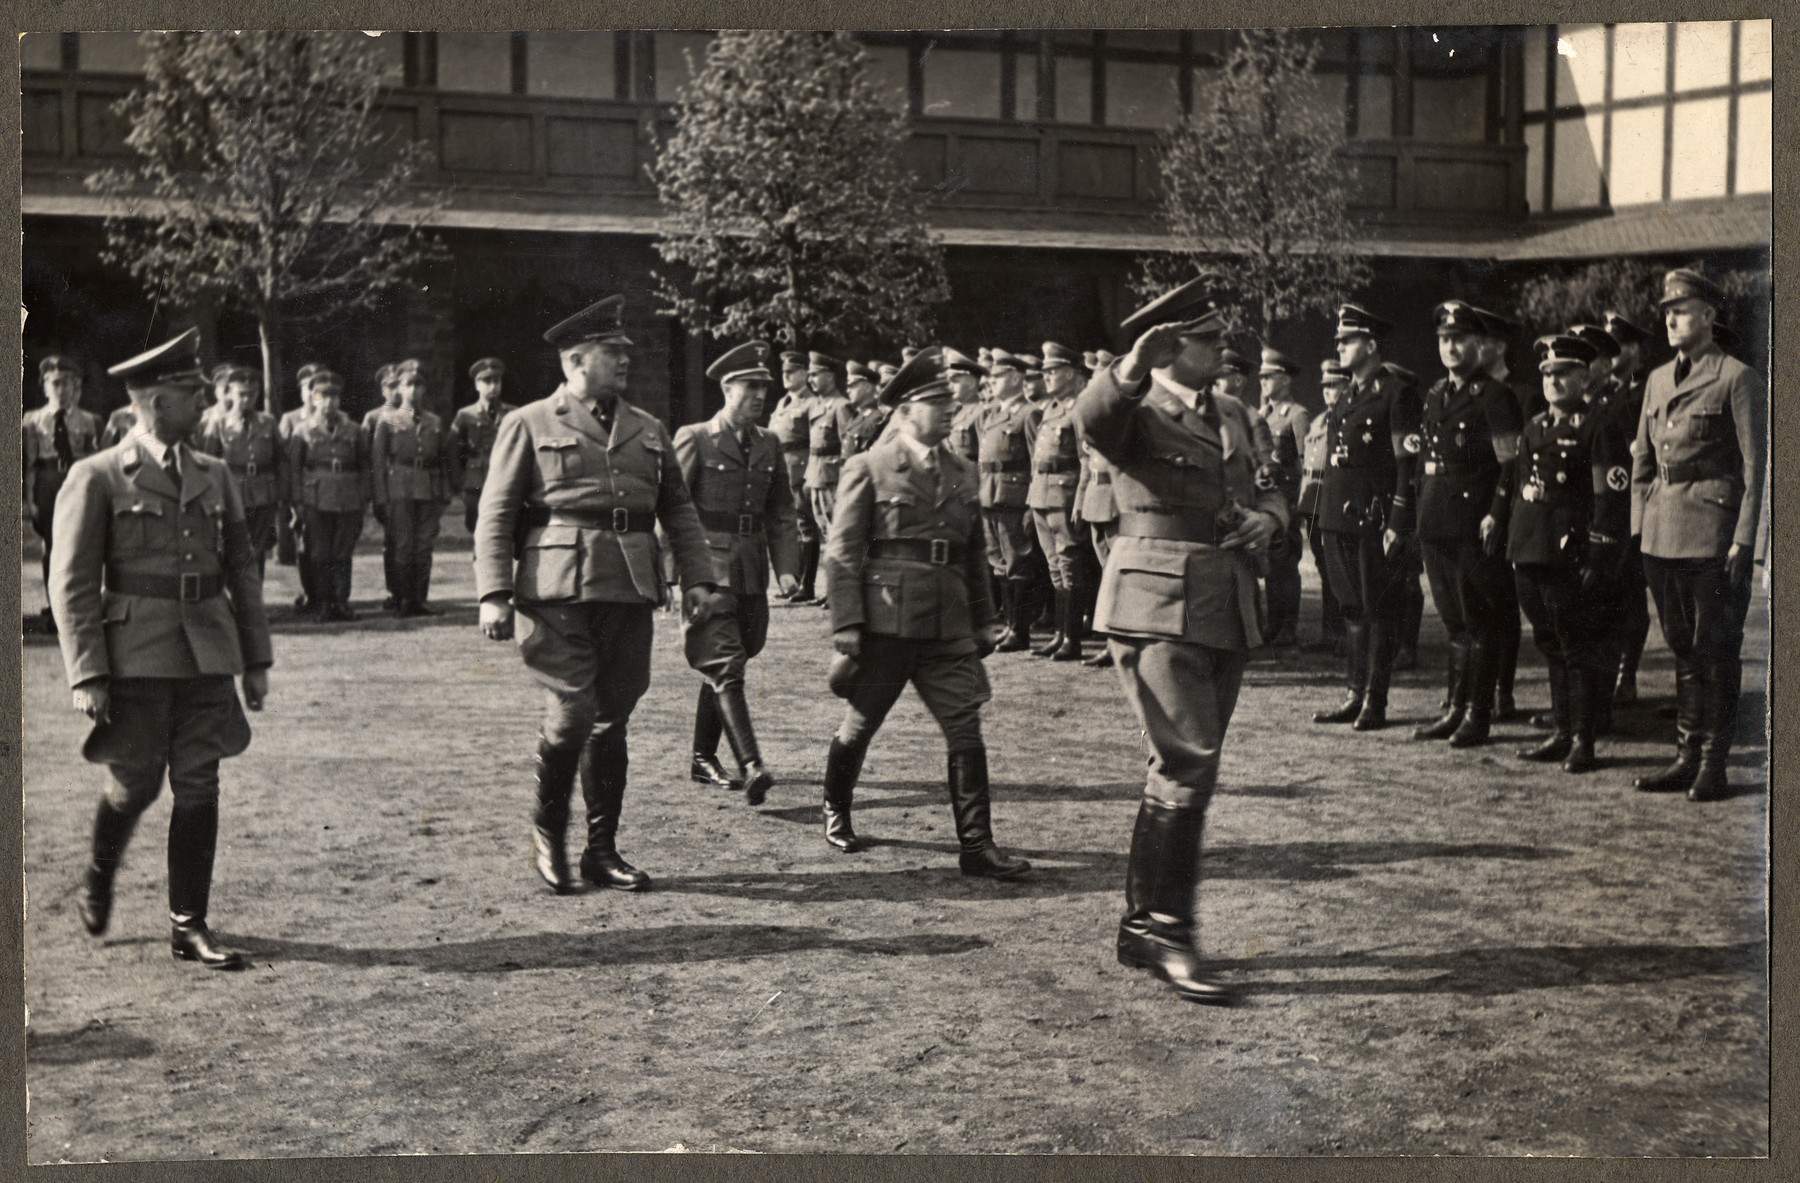 Nazi officials salute and walk in a courtyard at a seminar for Reich training and schooling in Erwitte.  Pictured from left to right are: Alfred Meyer,  Gauleiter Westfalen-Nord; Heinrich Vetter, Stellvertretenden Gauleiter von Westfalen-Sued; Friedrich Schmidt;  and Hans Frank (saluting).